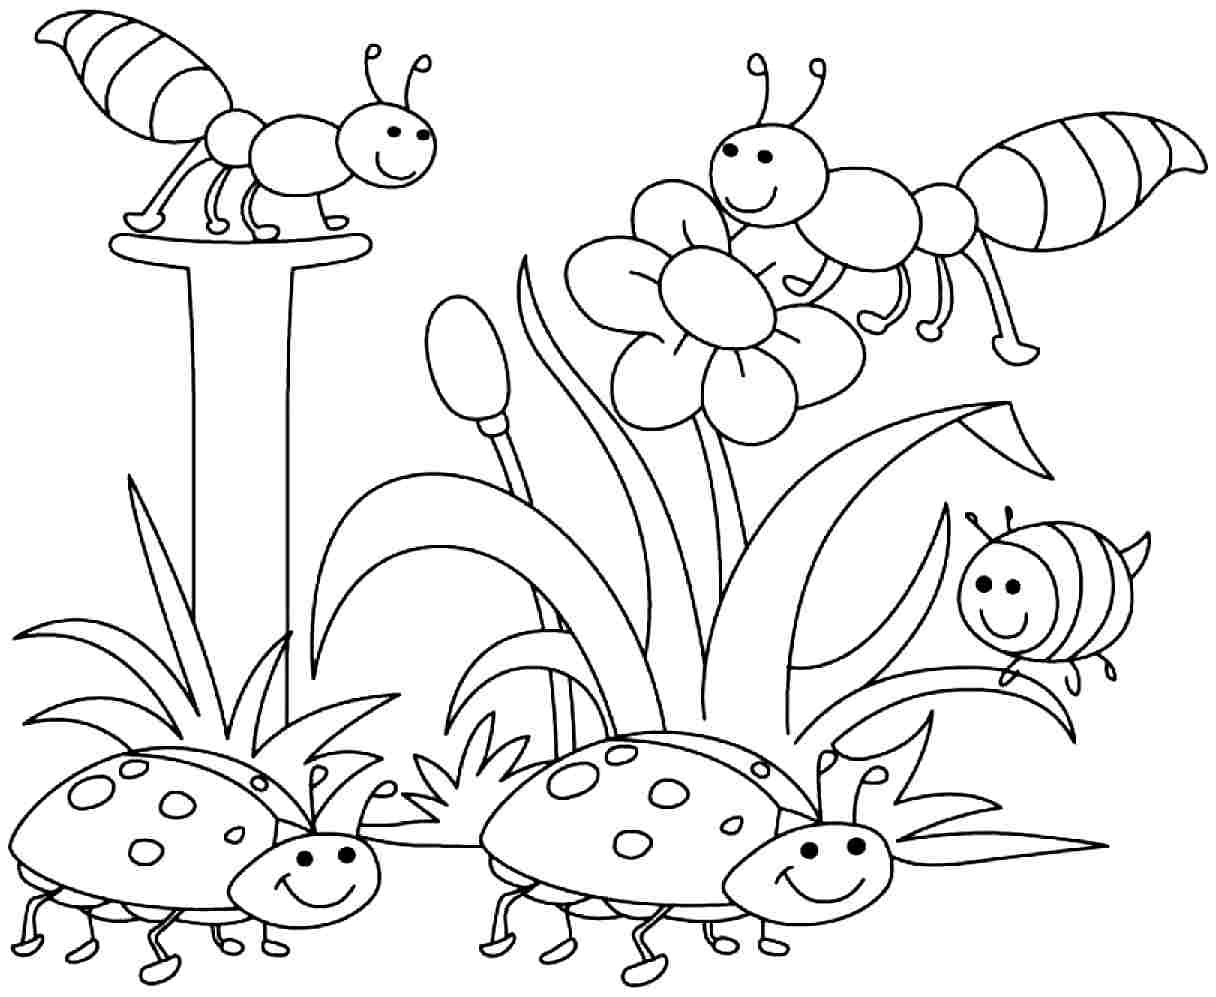 Free printable coloring pages of spring - Colouring Sheets For Toddlers Kindergarten Colouring Worksheet March Spring Coloring Pages Monday 21 March 2016